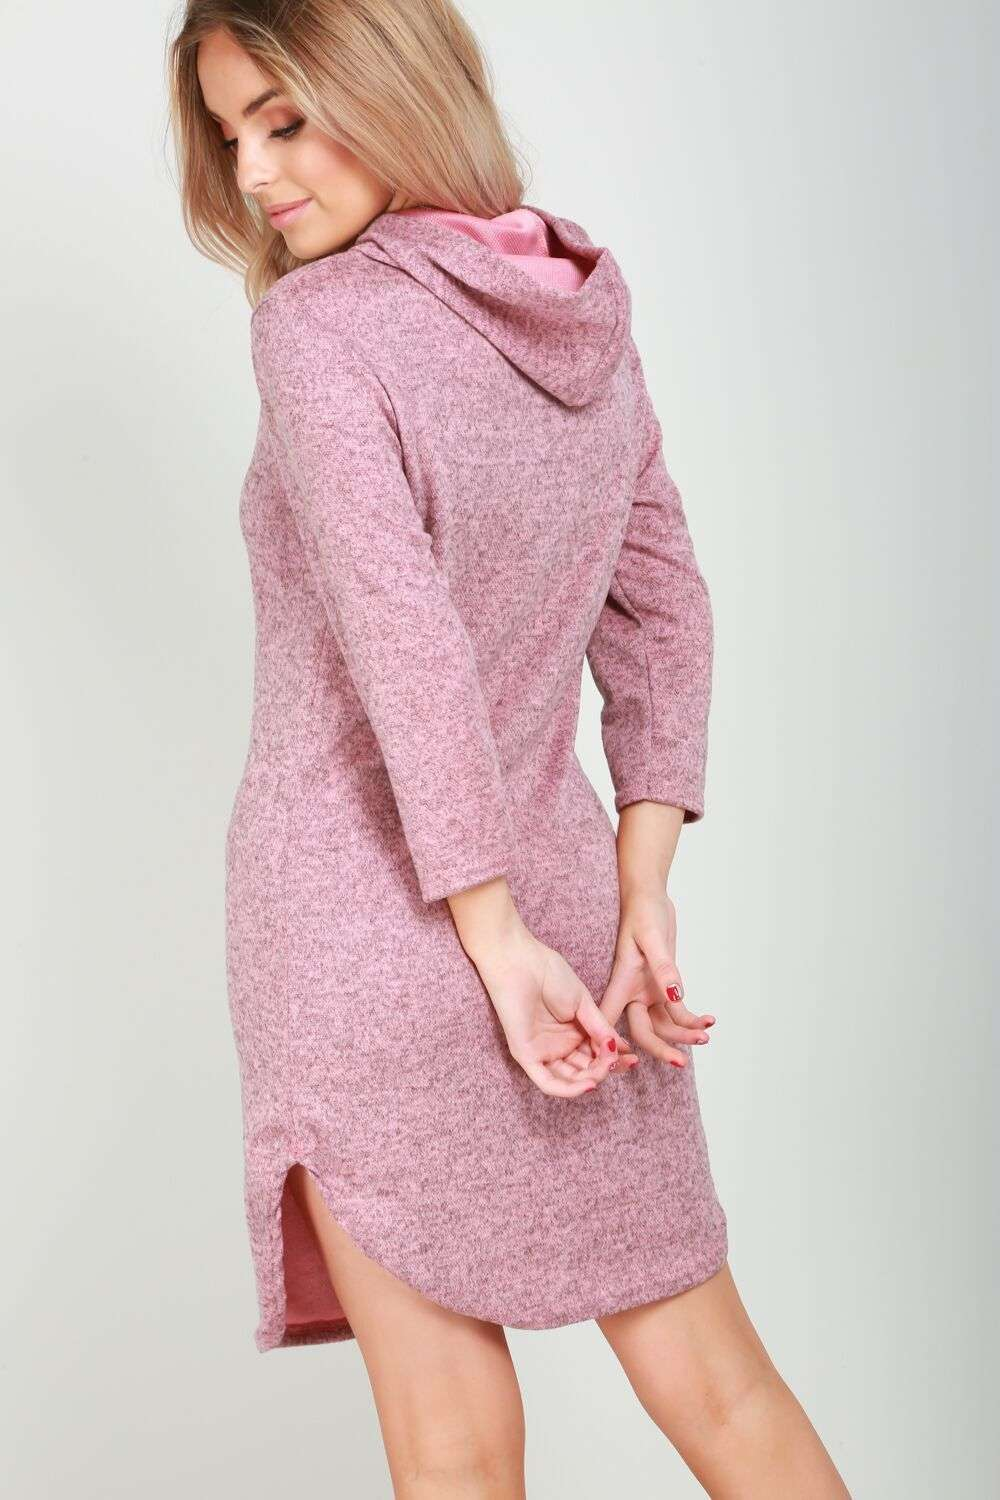 Violet Long Sleeve Oversized Hooded Sweater Dress - bejealous-com